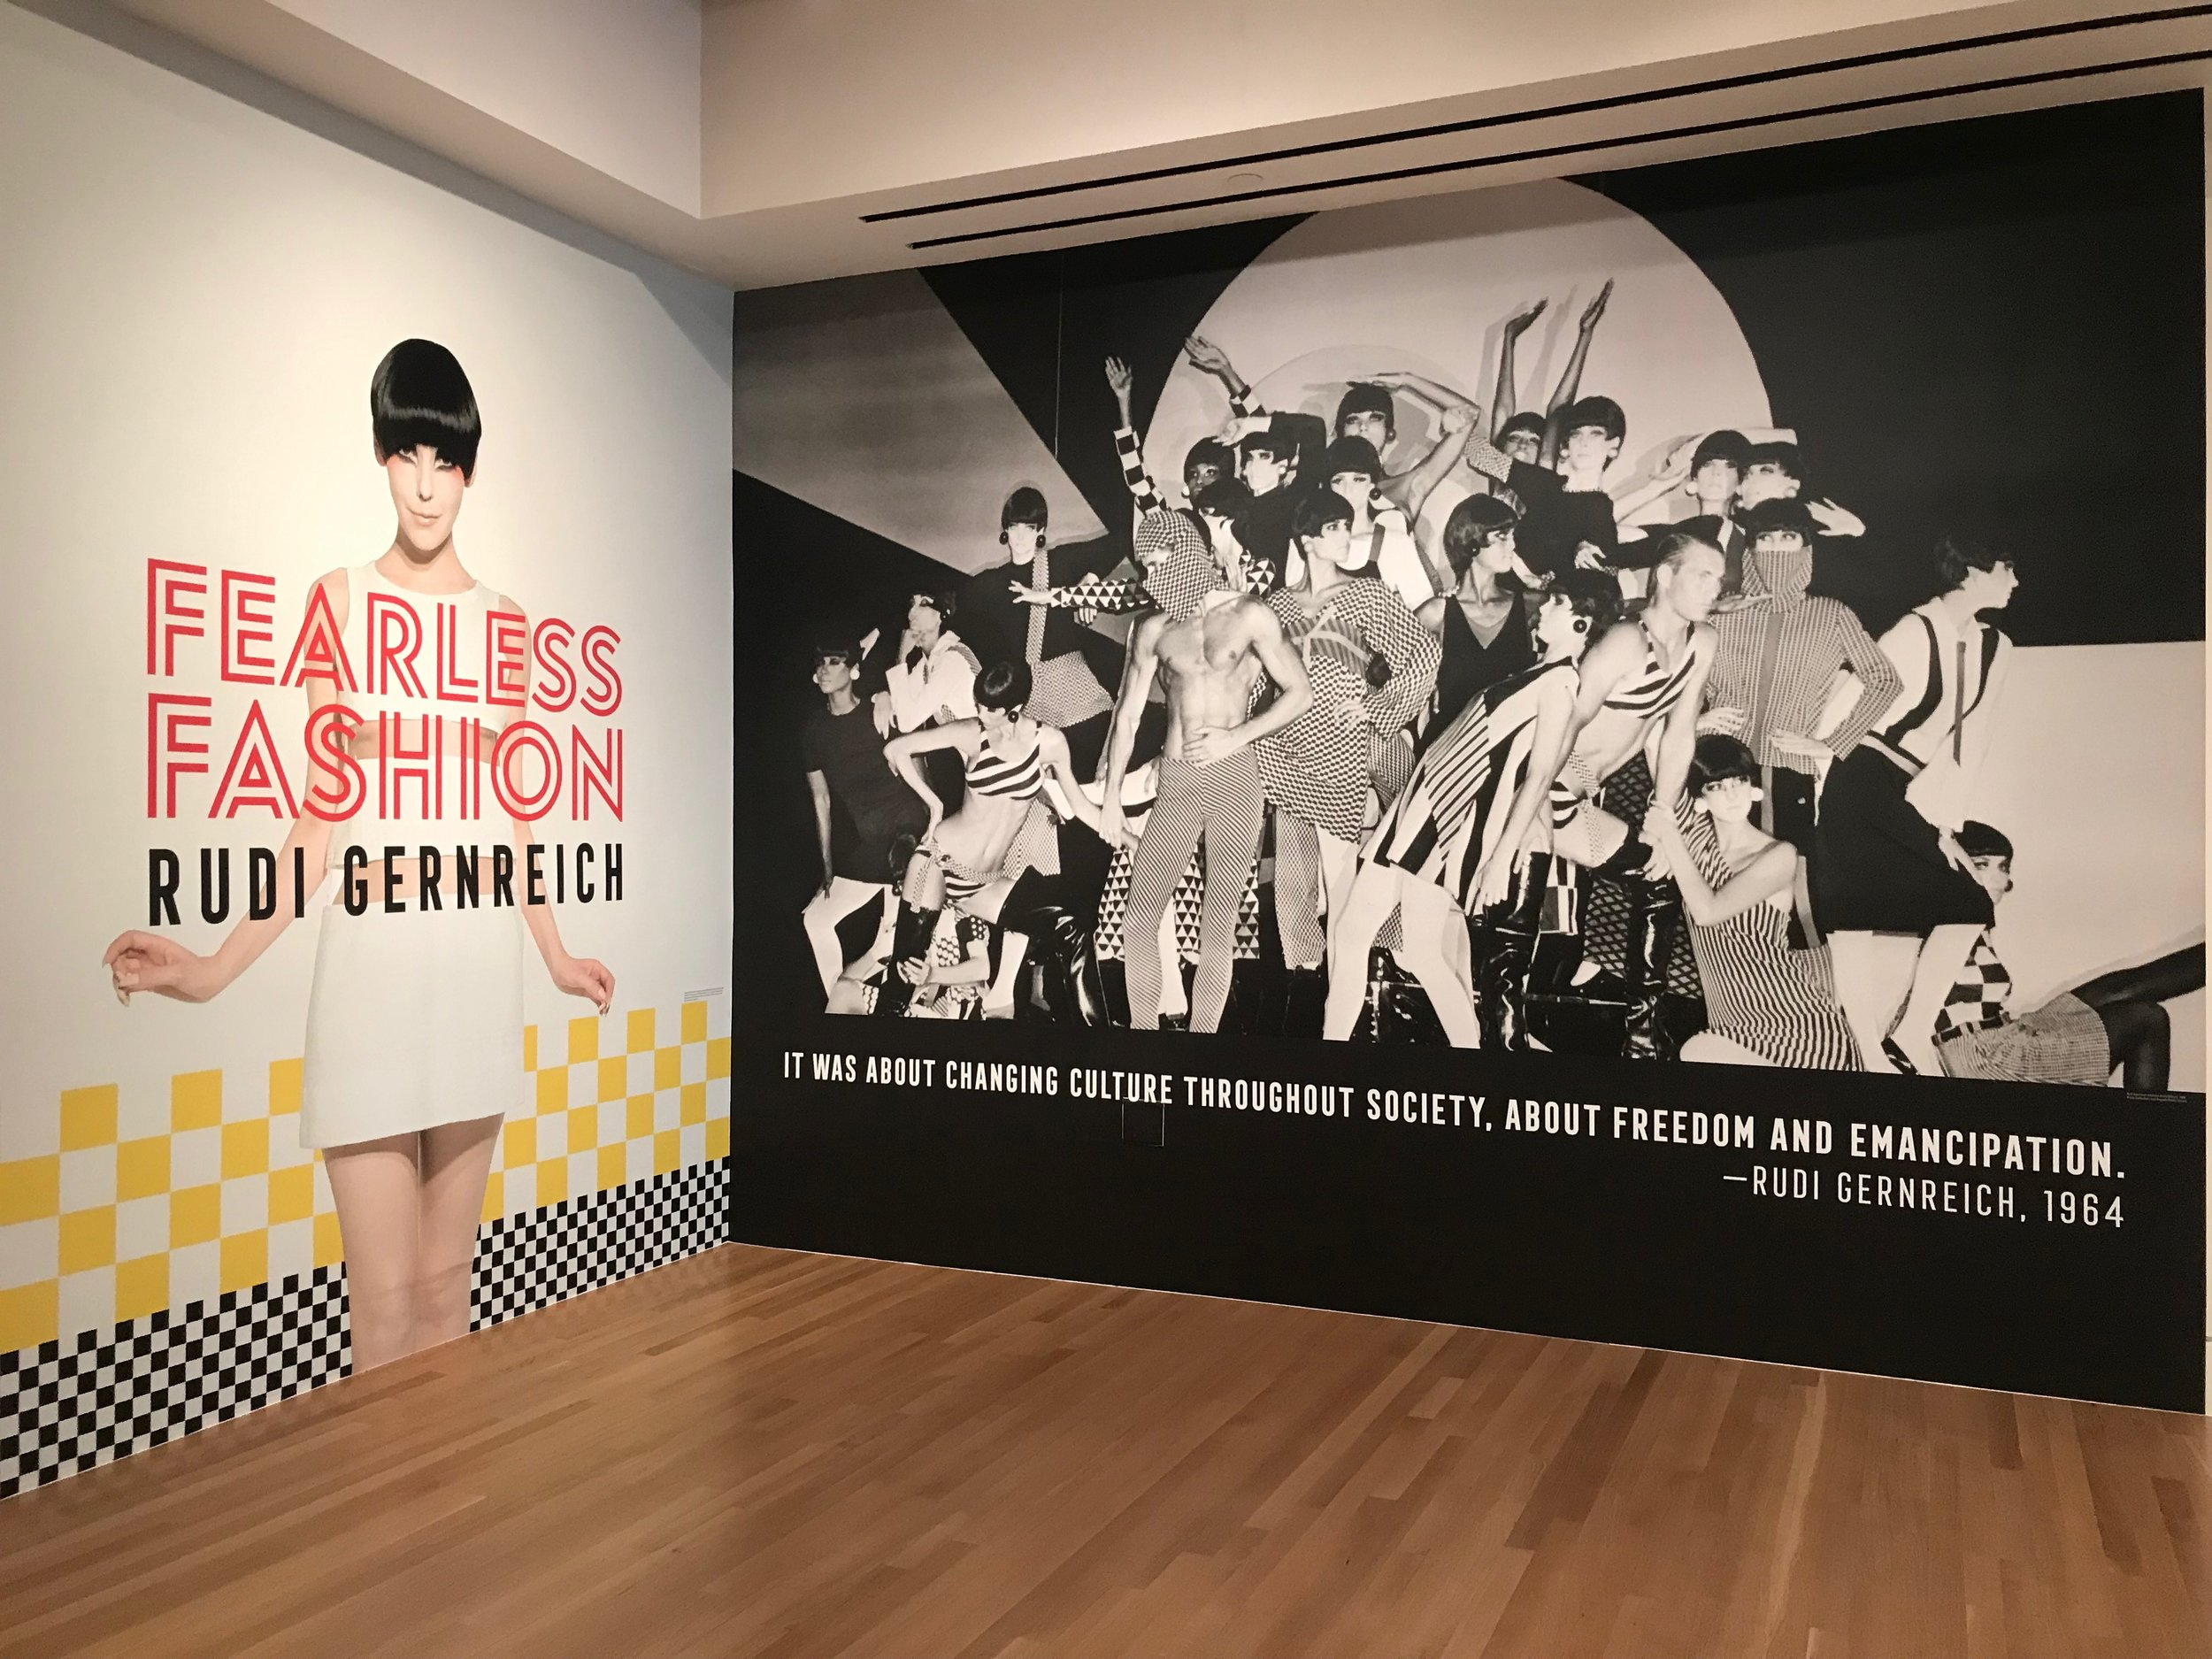 Photo by Jamia Weir of the Fearless Fashion: Rudi Gernreich at the Skirball Cultural Center.